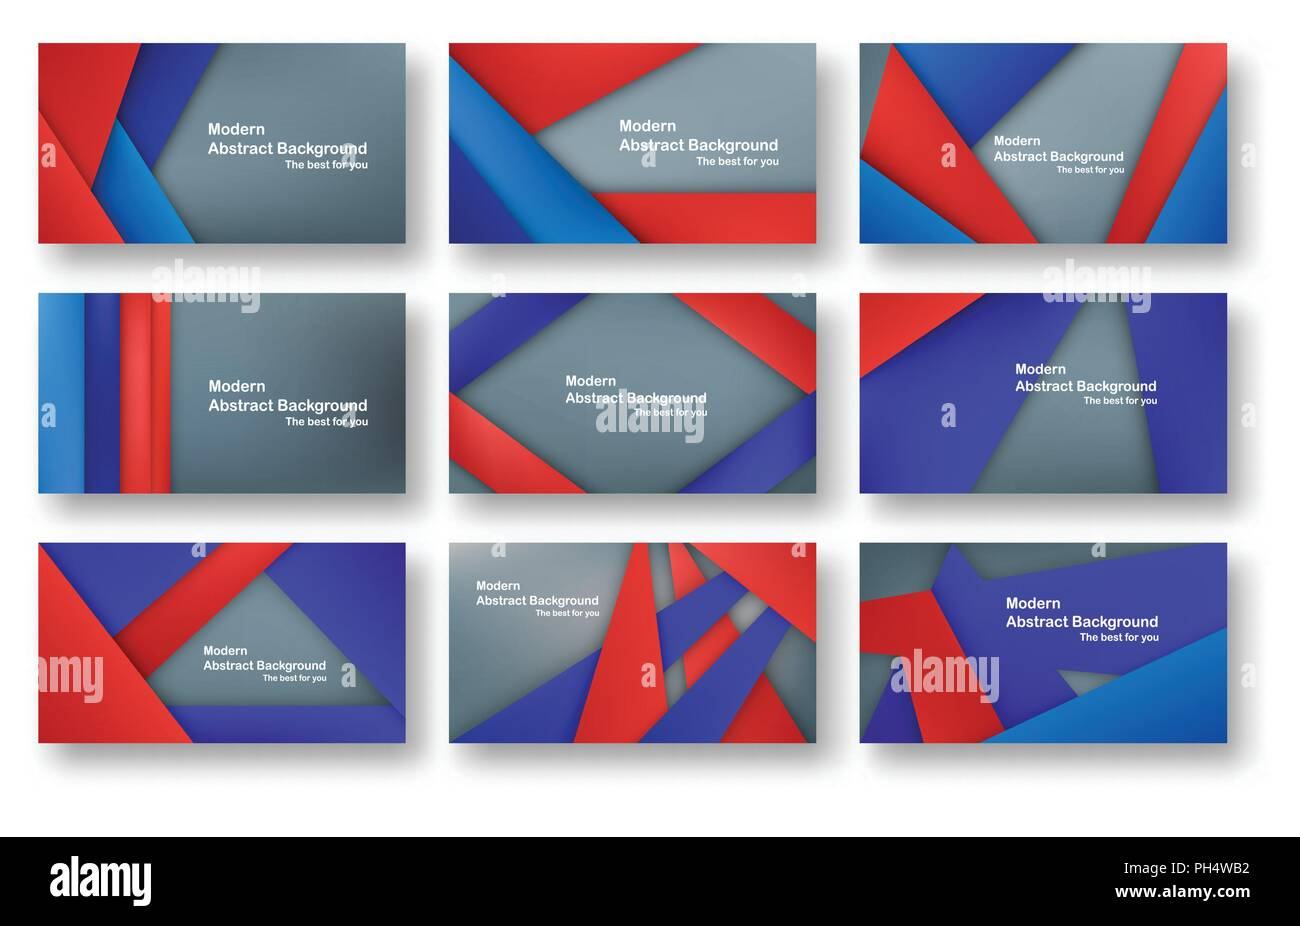 Abstract Red And Blue Material Design On Grey Background For